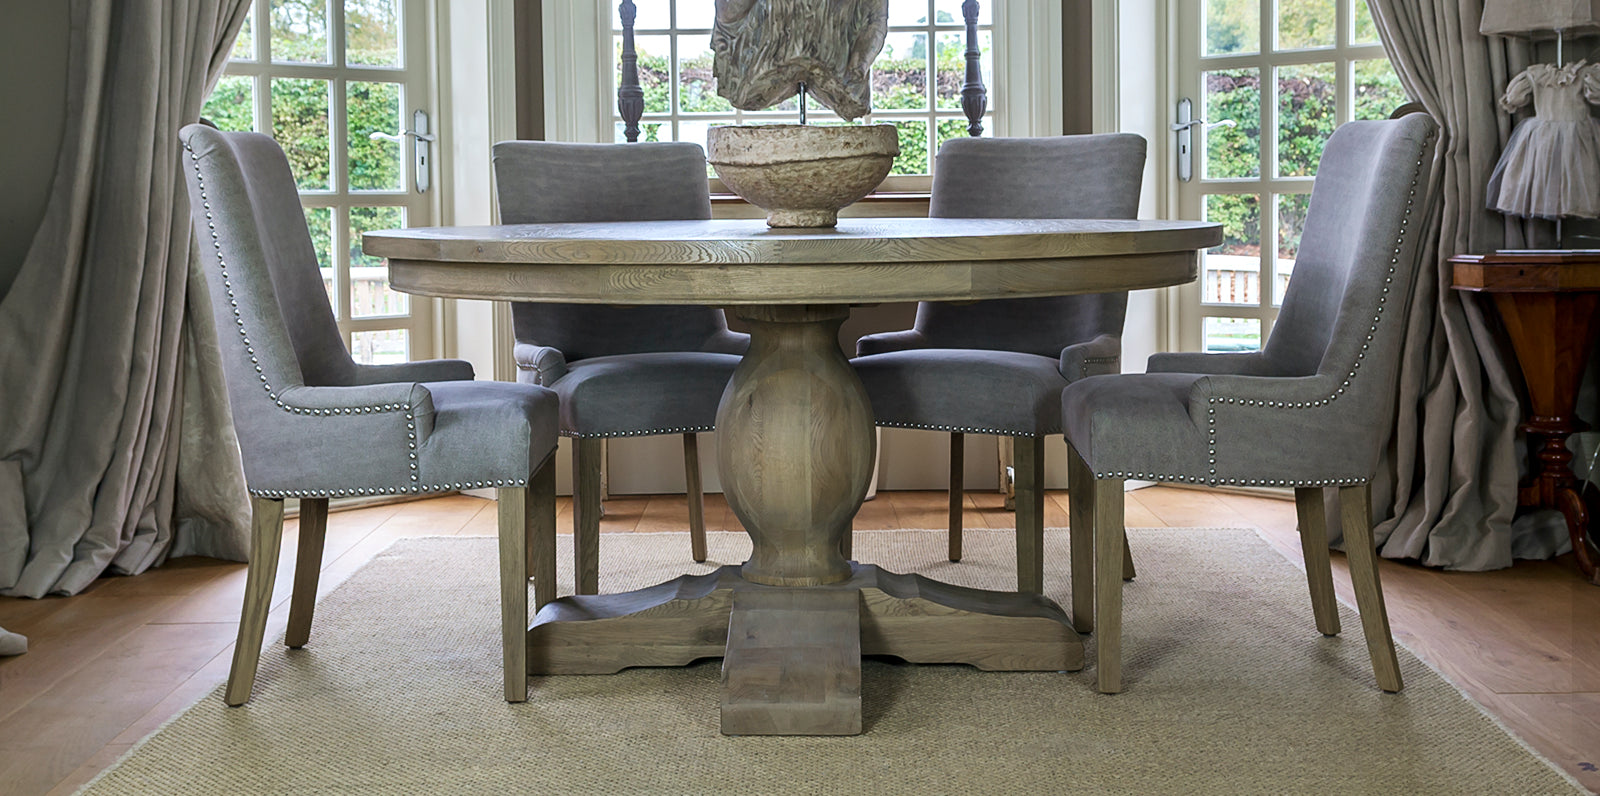 Amberley round dining table